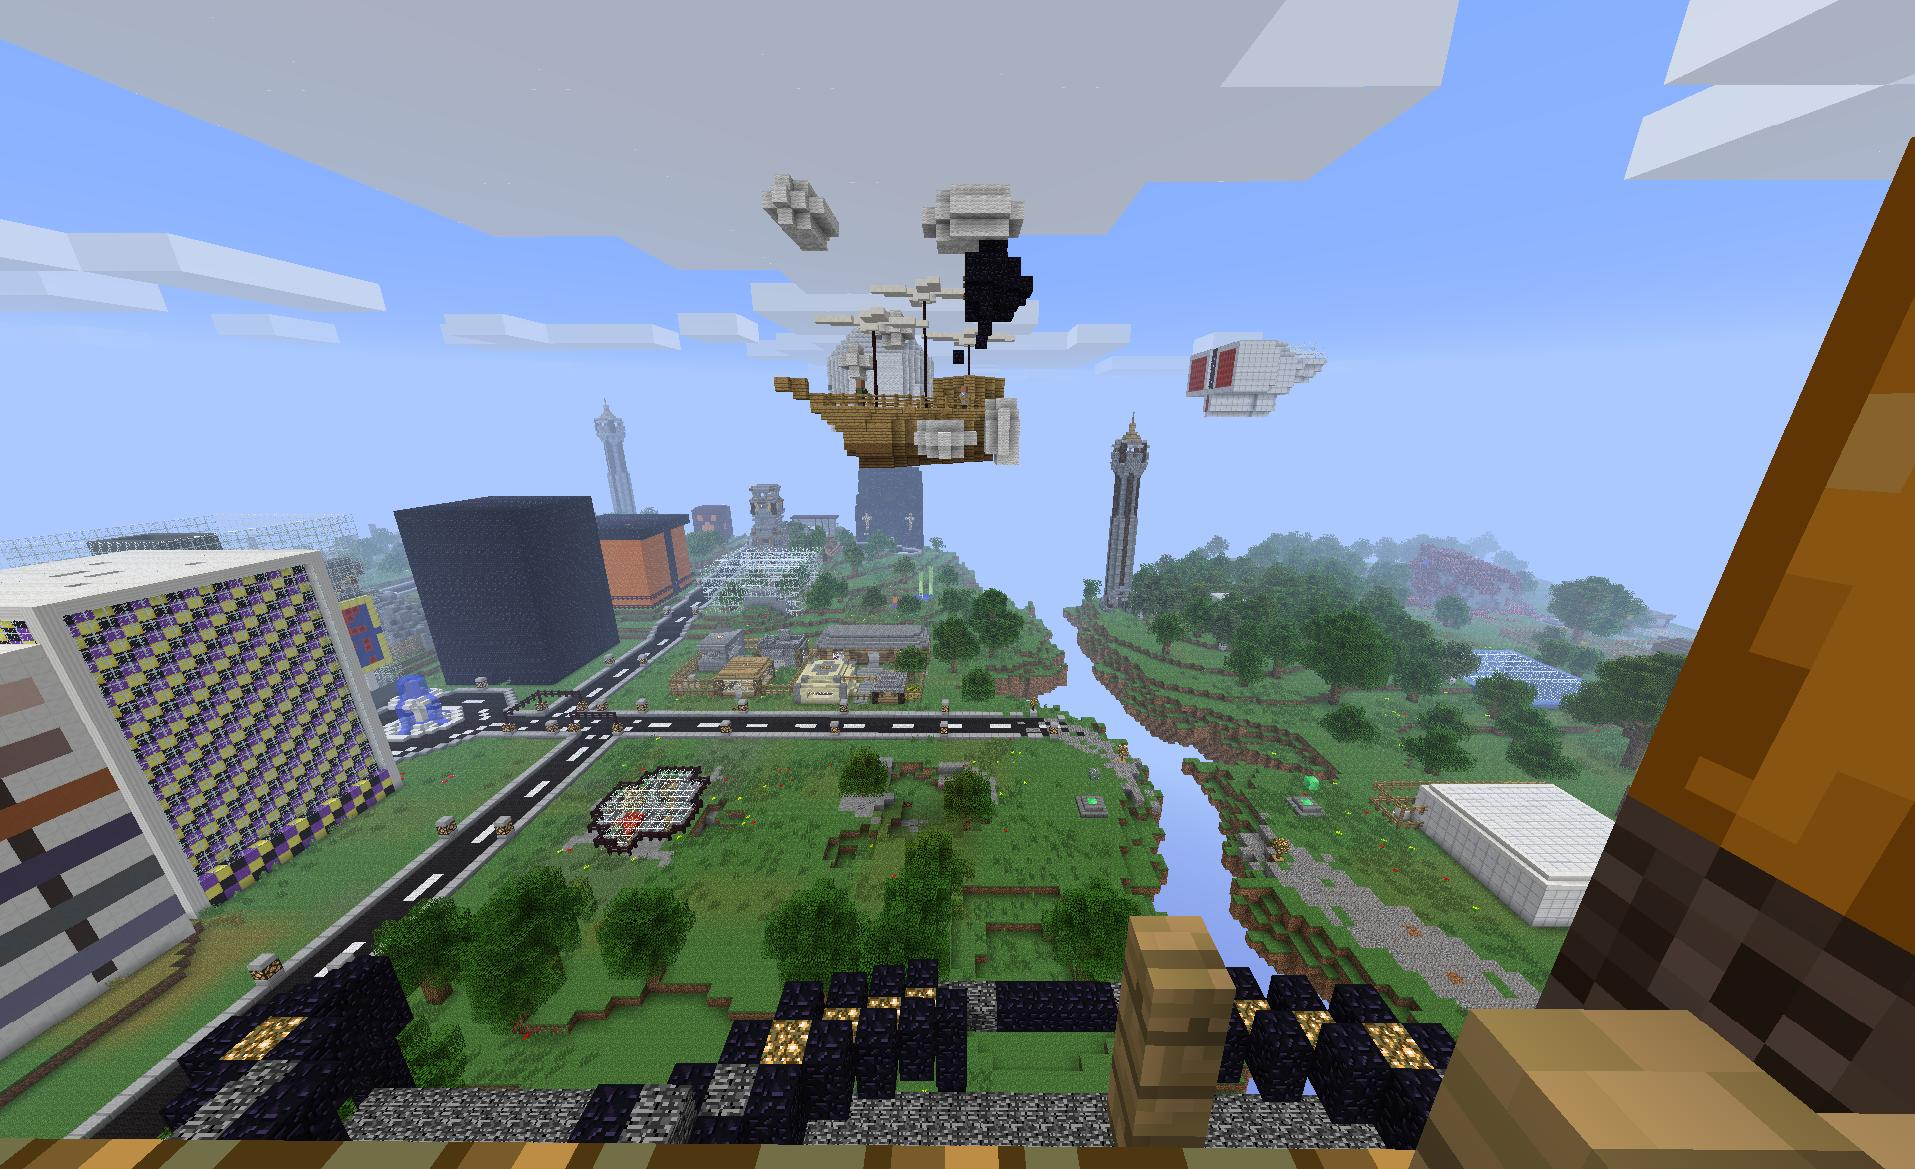 http://img.niceminecraft.net/Map/Adventure-Multiplex-2-The-Village-Map-1.jpg